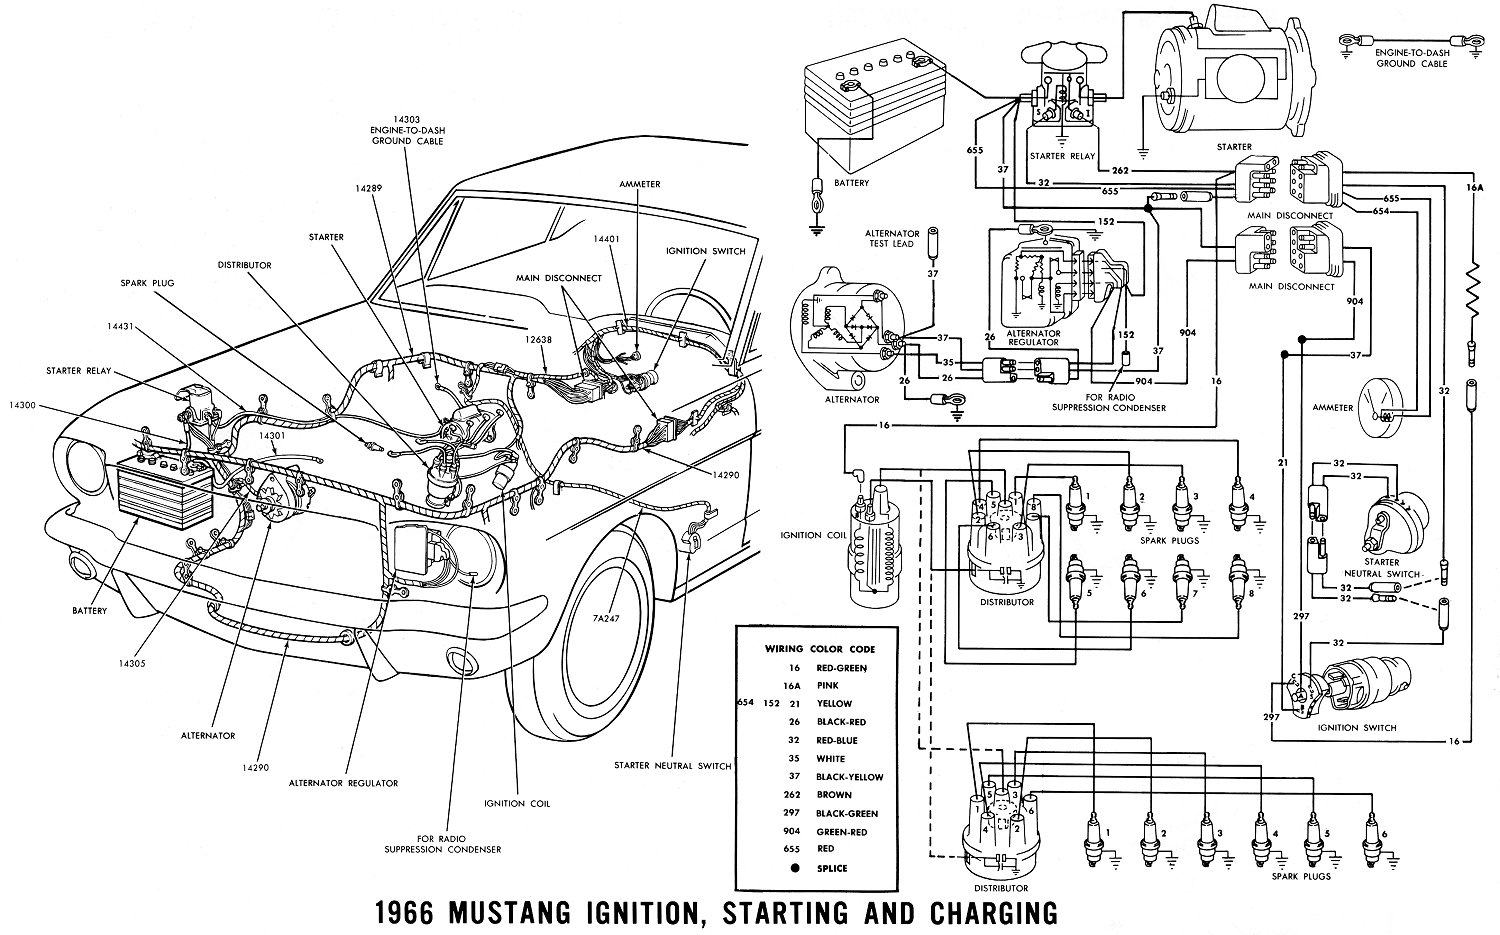 66ignit wiring diagrams 1968 ford f100 6 cyl readingrat net 1969 Ford F100 Steering Column Wiring Diagram at crackthecode.co